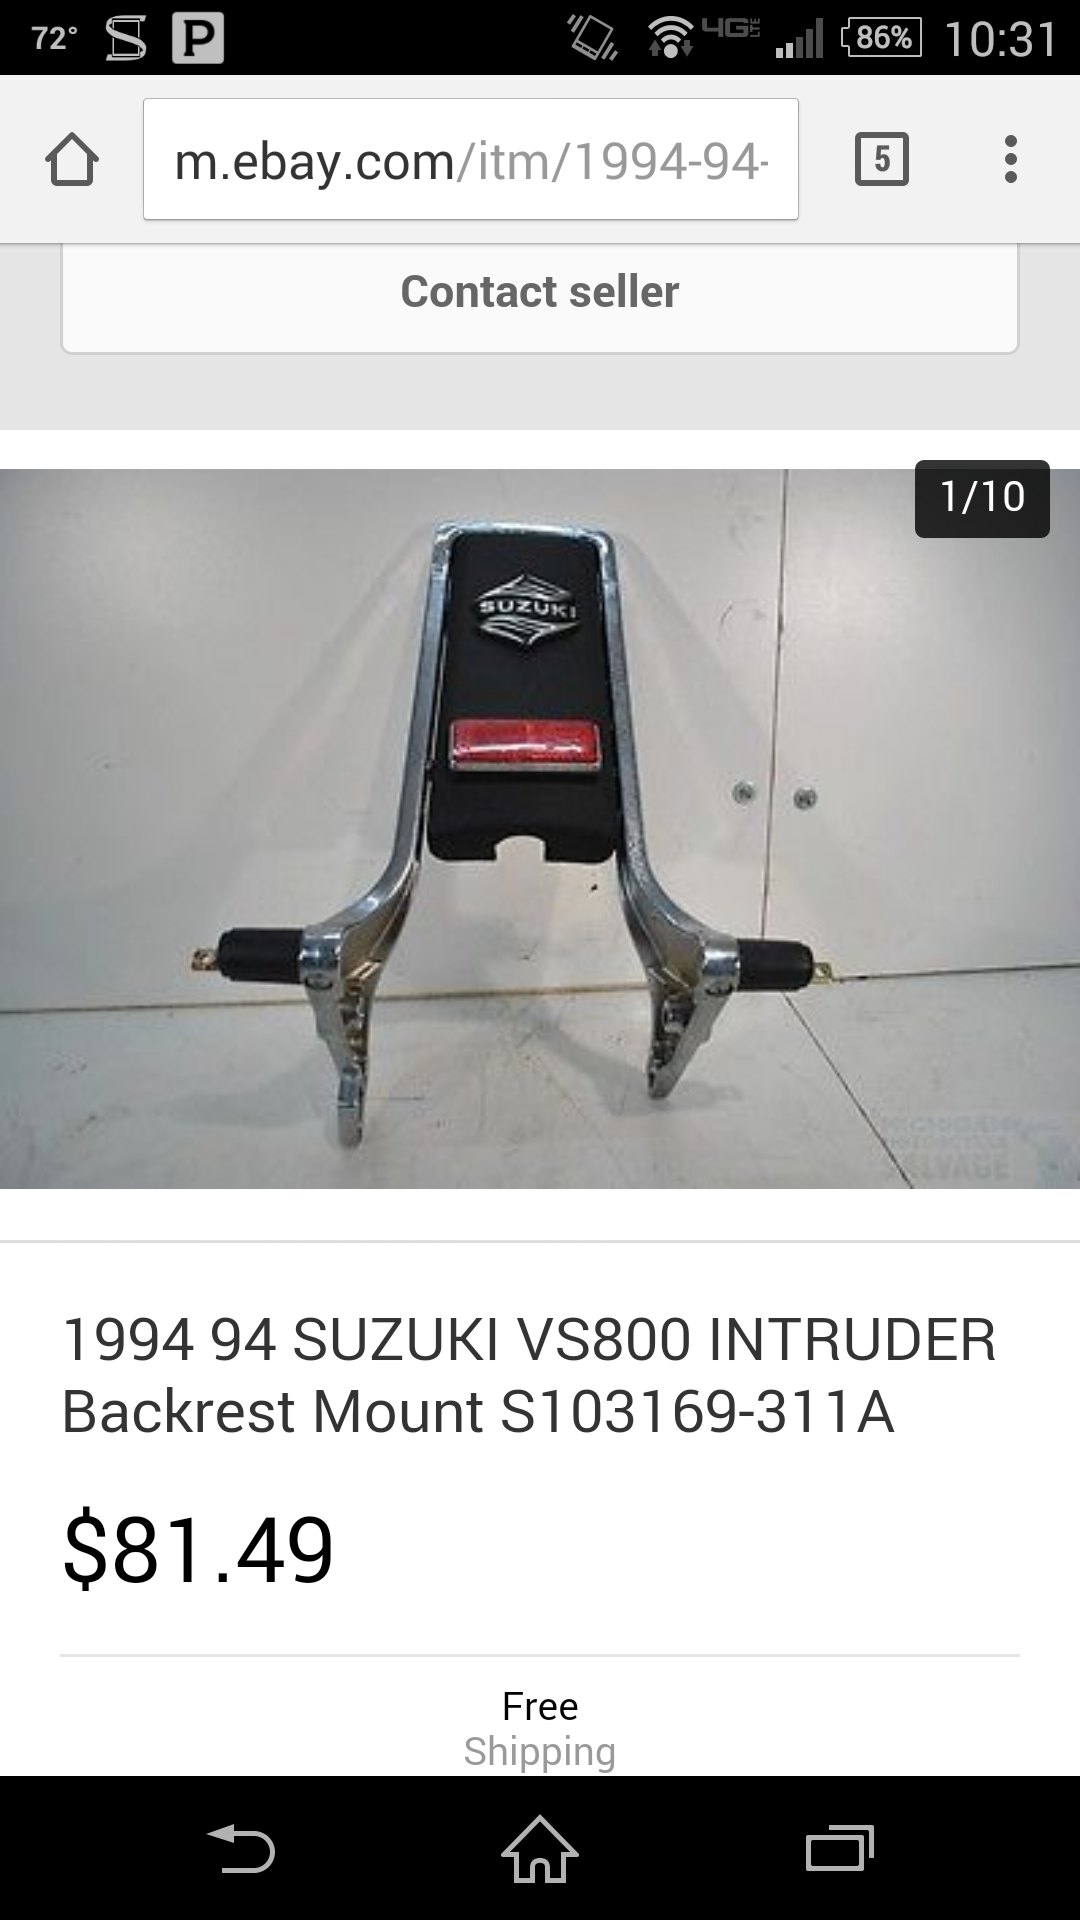 Will the pad fit my backrest?-screenshot_2015-08-20-10-31-12.png